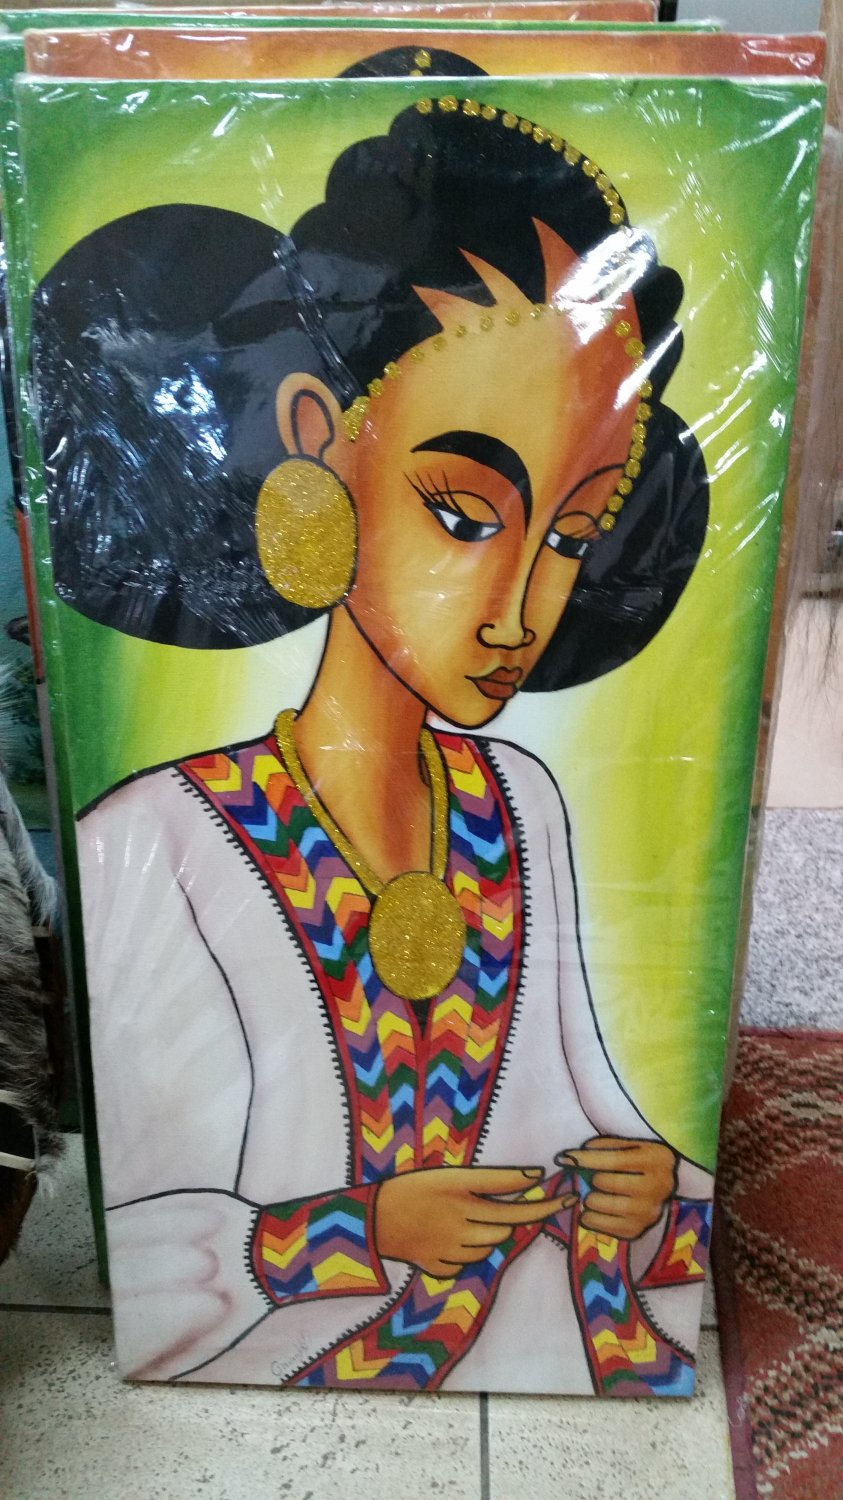 Ethiopian,Eritrean Habeshan, African Drawings and Arts Free shipping world wide  2